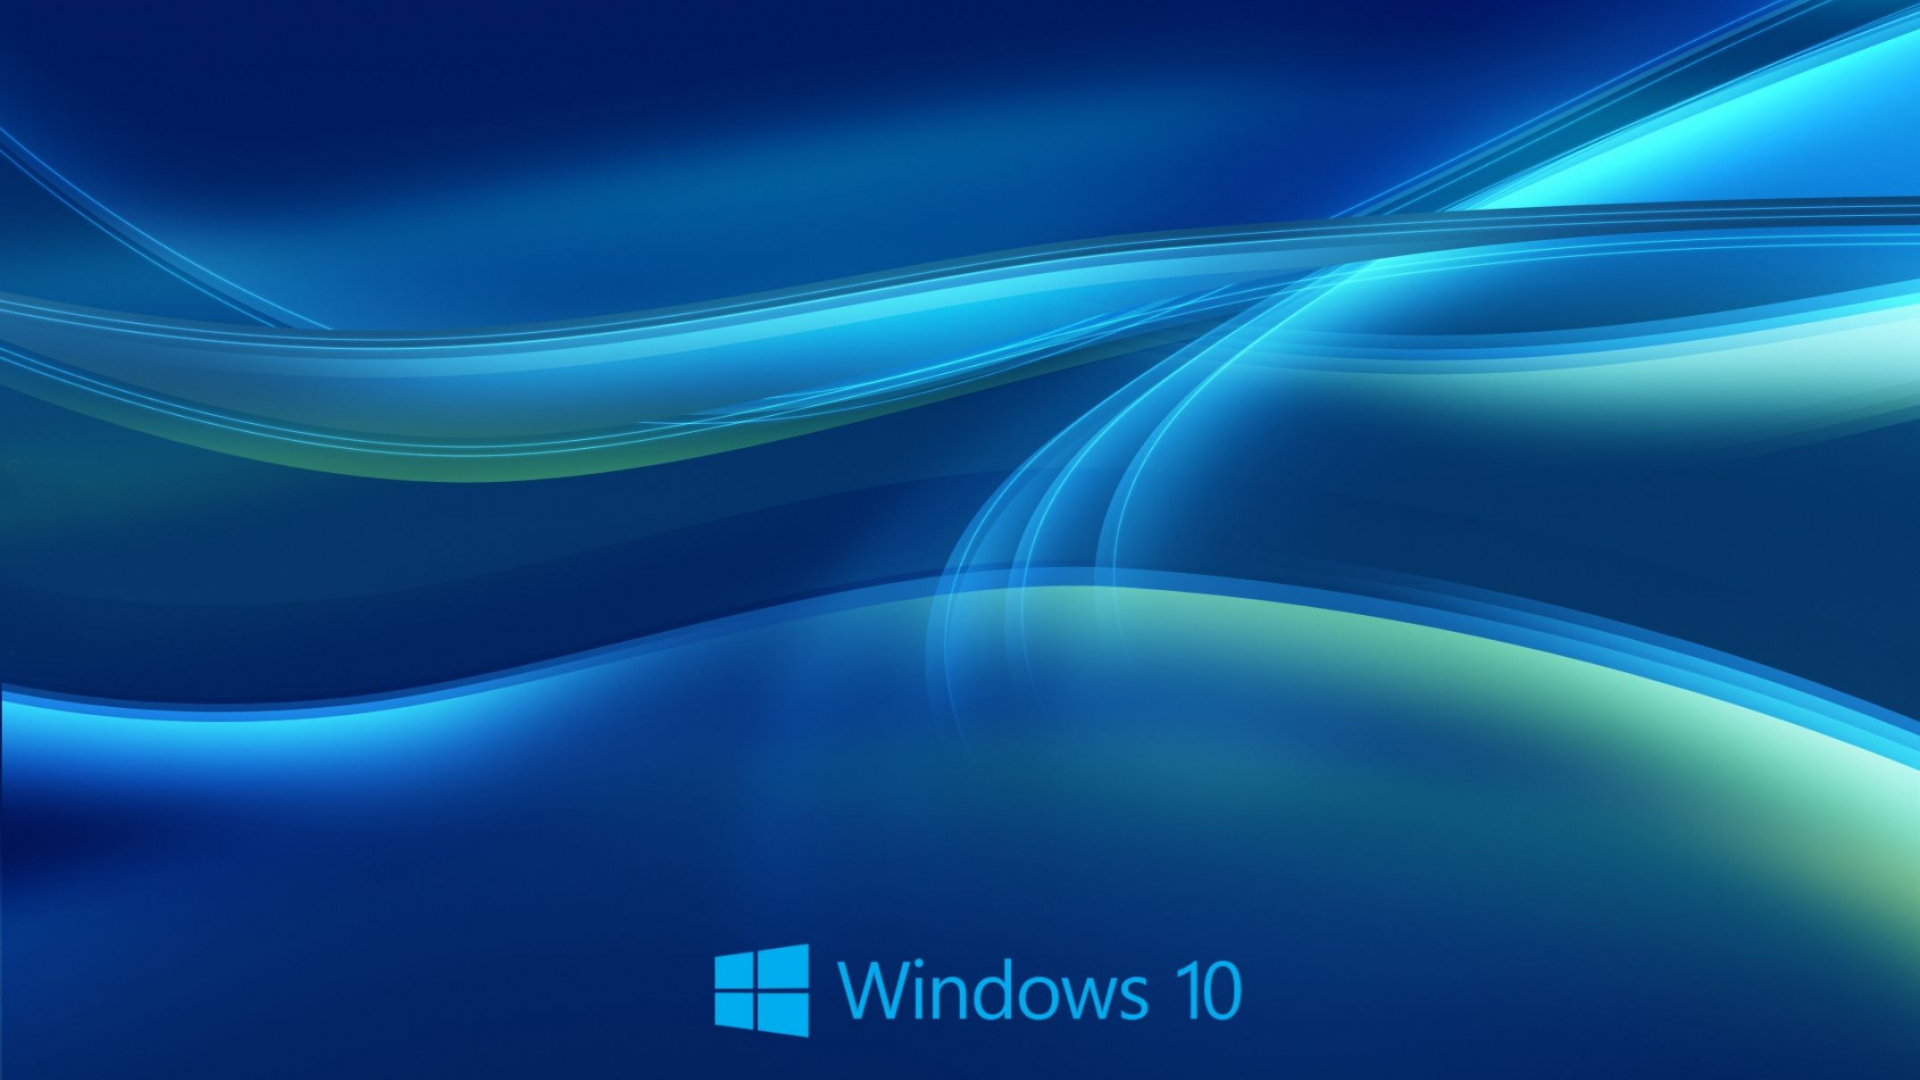 Free Download Windows 10 Full Hd Wallpaper Computers In 2019